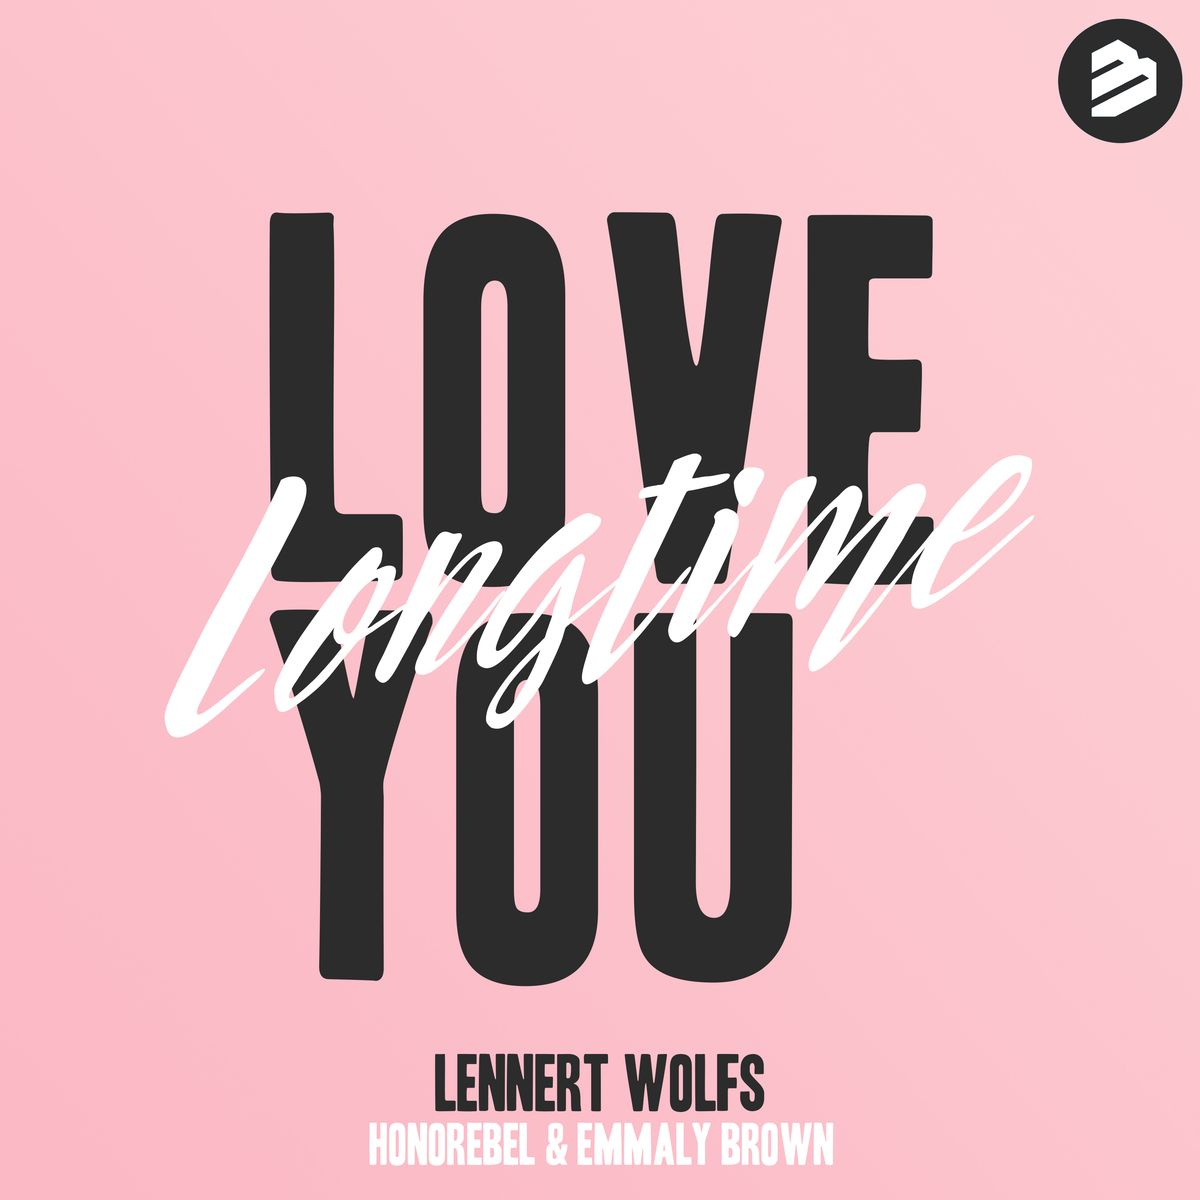 lennert_wolfs_honorebel_emmaly_brown-love_you_longtime_s